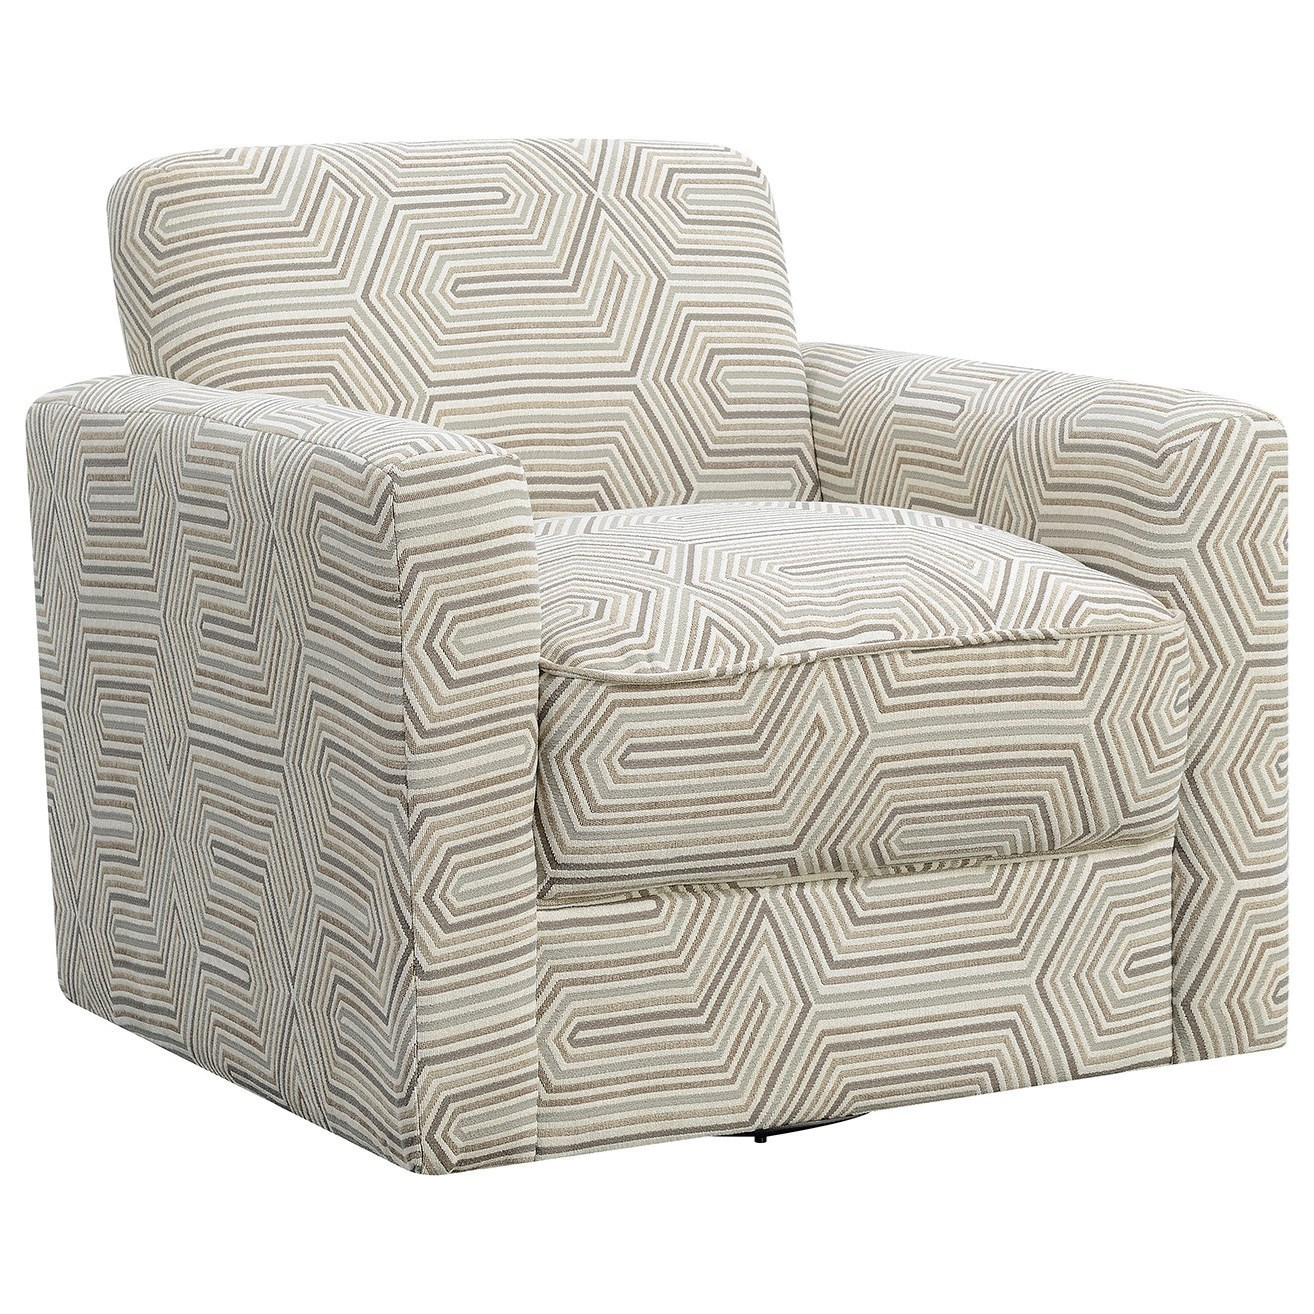 Upholstered Swivel Chairs Paramount Swivel Upholstered Chair By Elements International At Great American Home Store